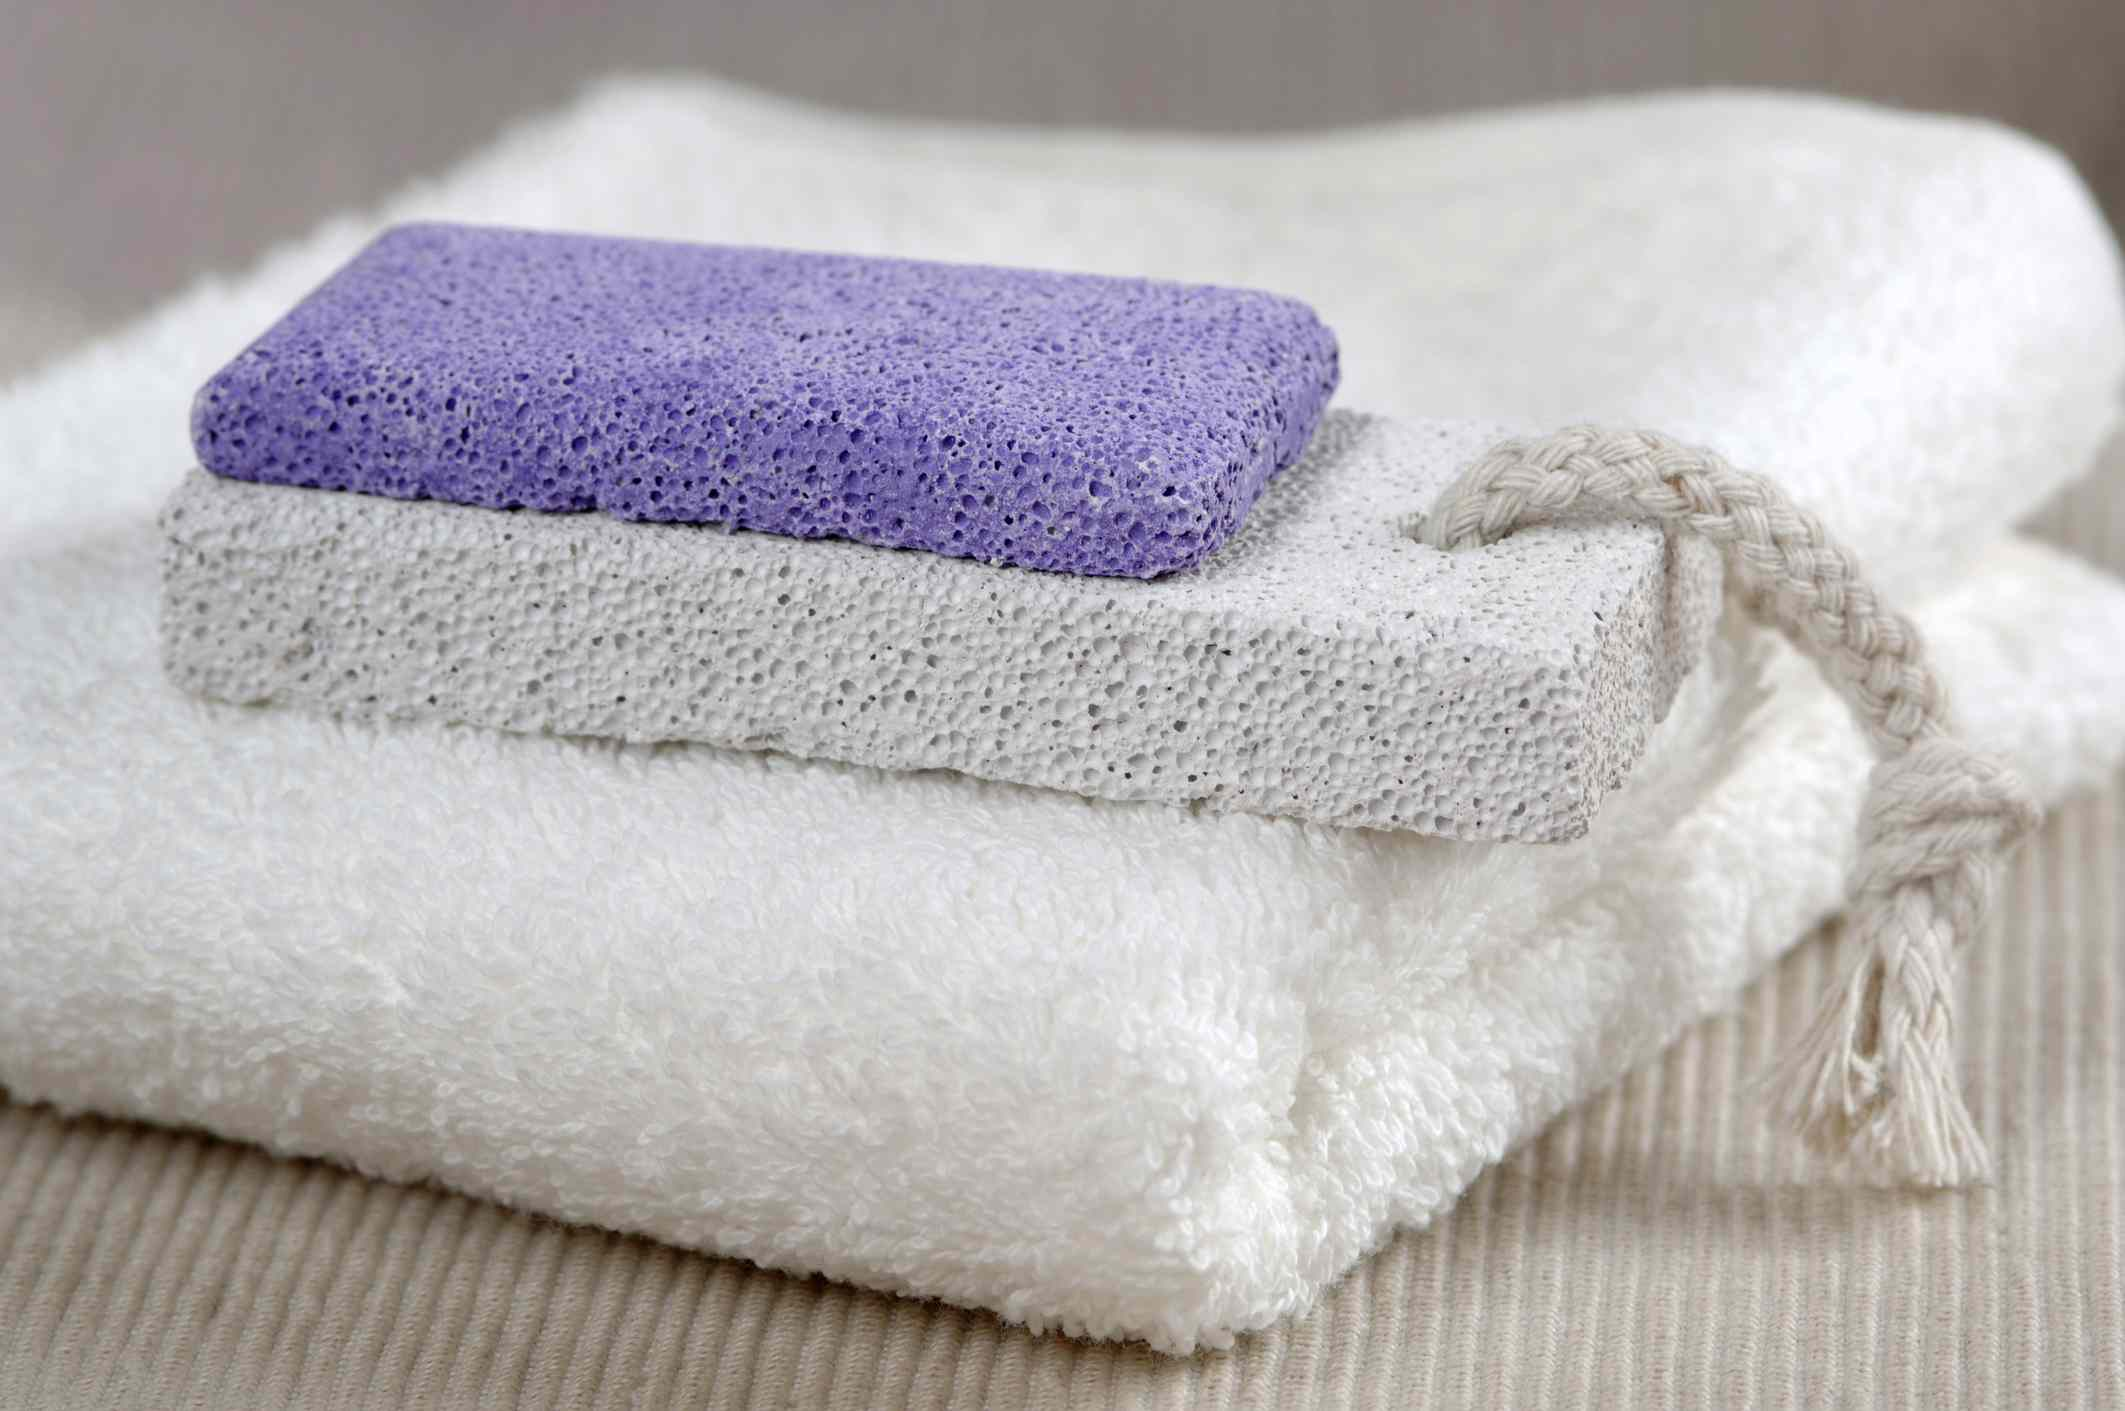 two pumice stones sit atop a towel.